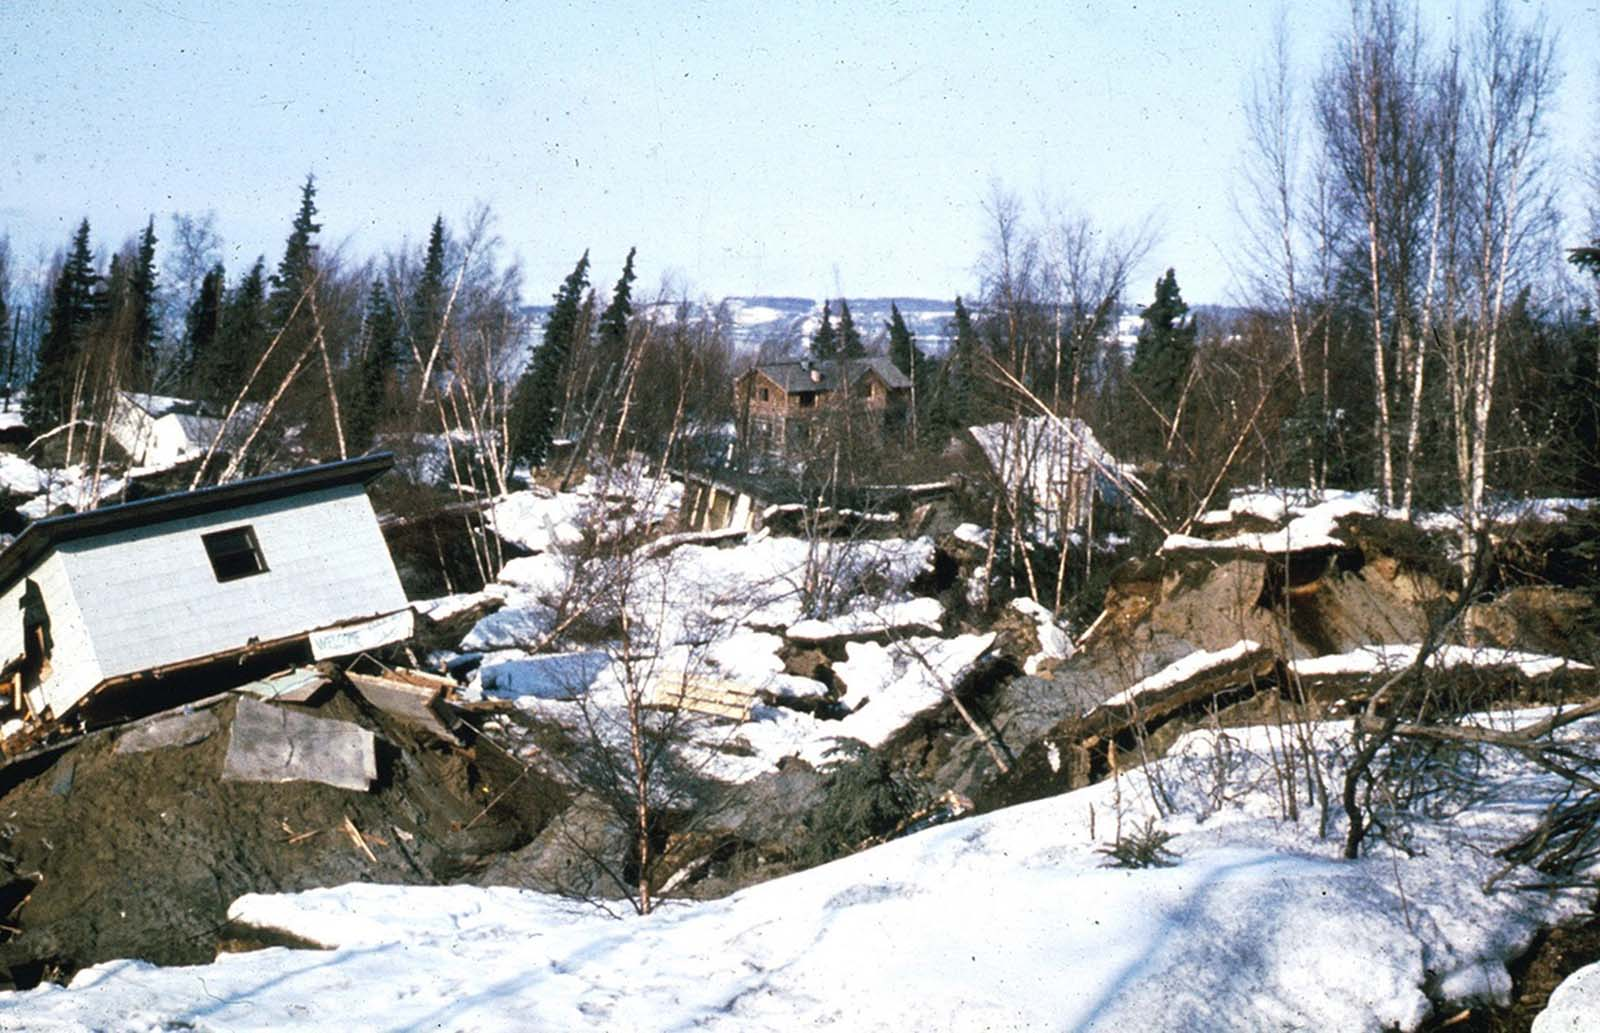 Damaged homes in the Turnagain Heights landslide area in Anchorage.